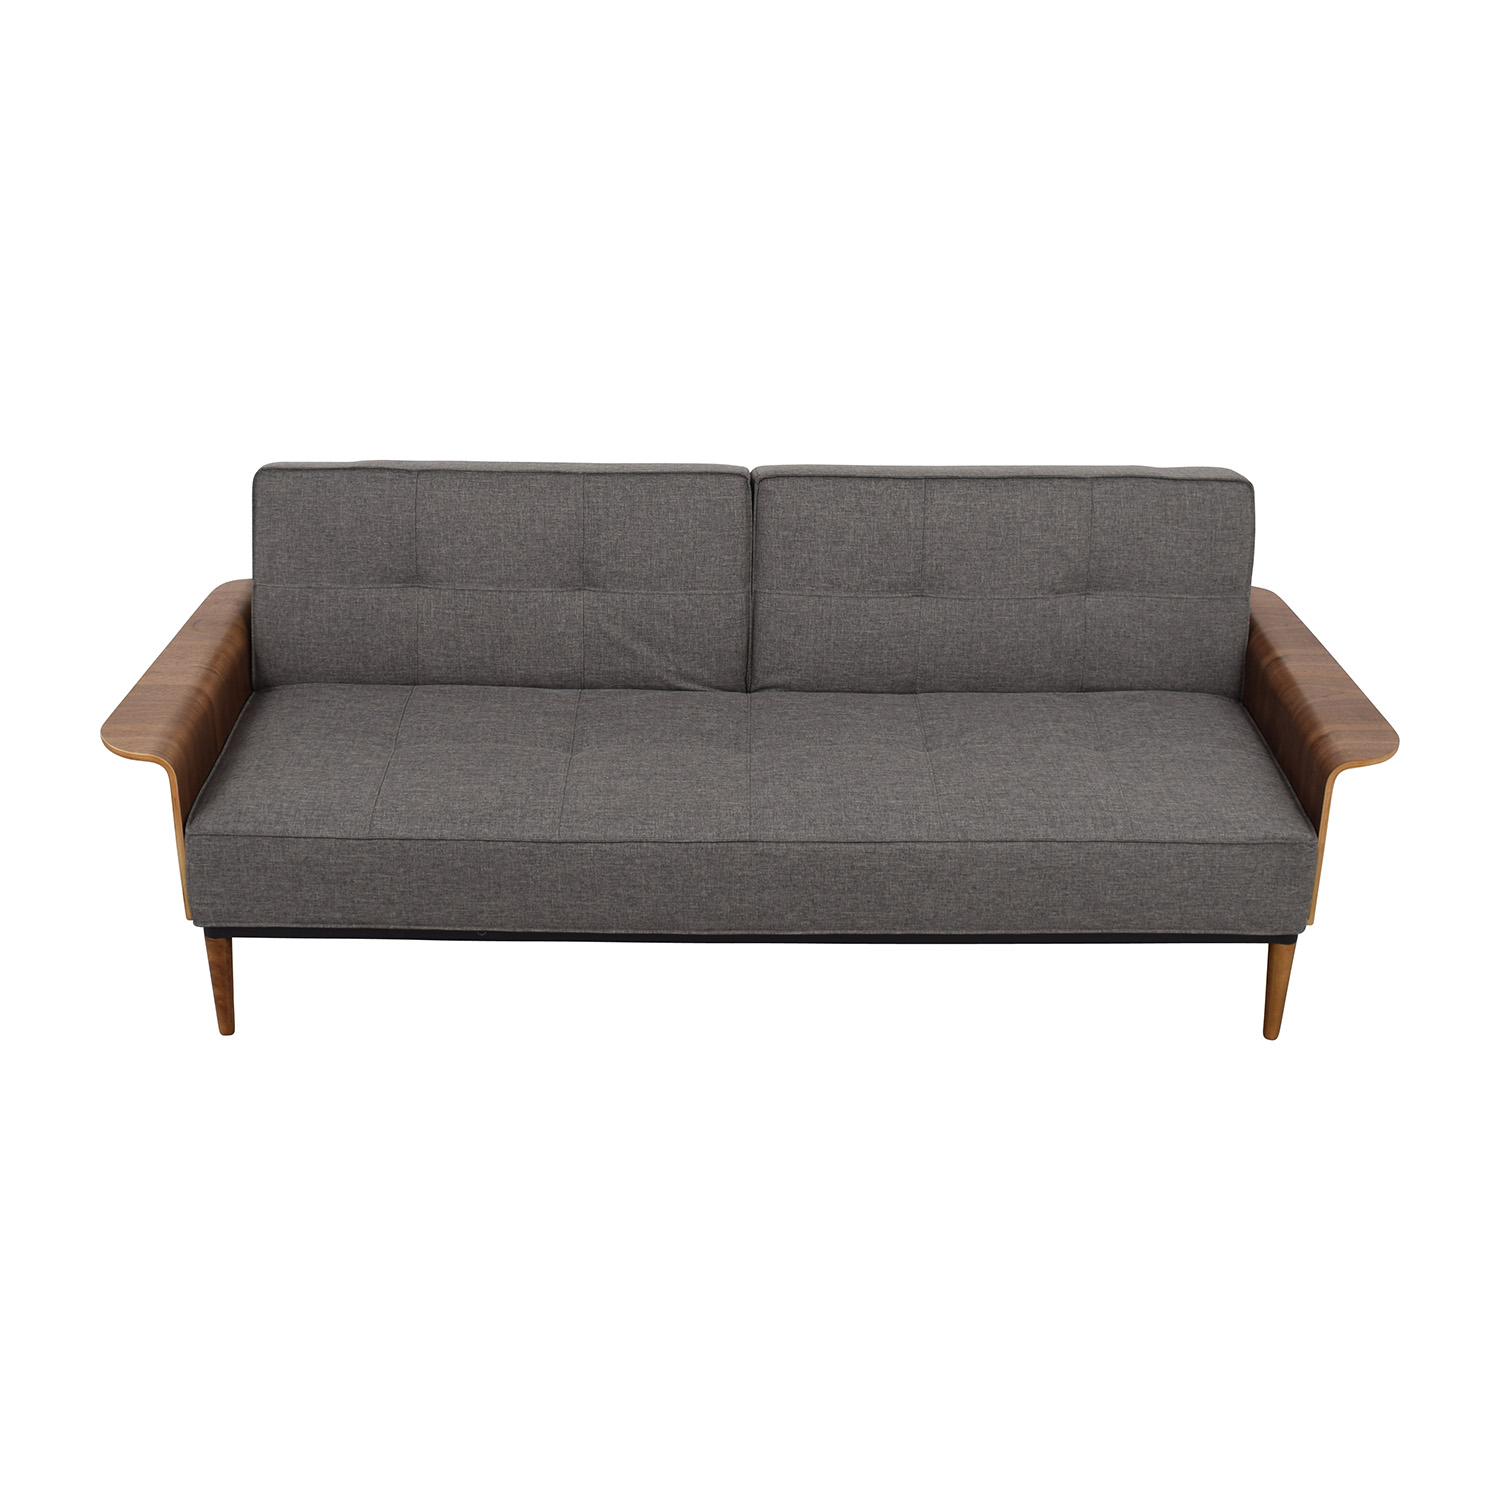 shop Inmod Inmod Bjorg Tufted Dark Grey Sofabed online